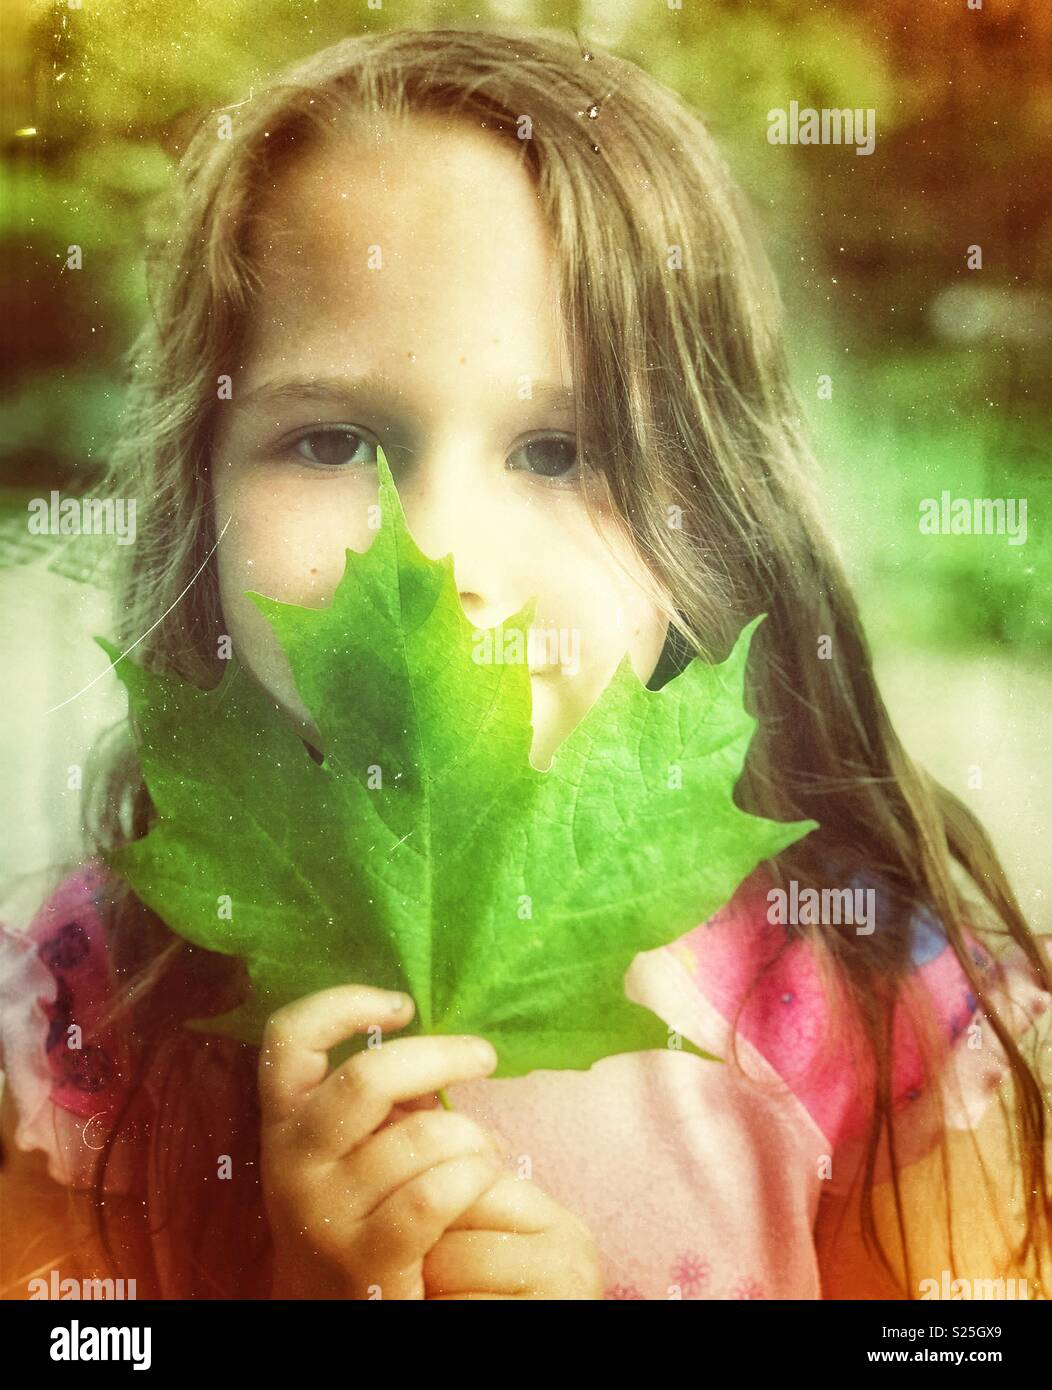 Portrait of a young girl with long brown hair holding a large green maple leaf - Stock Image